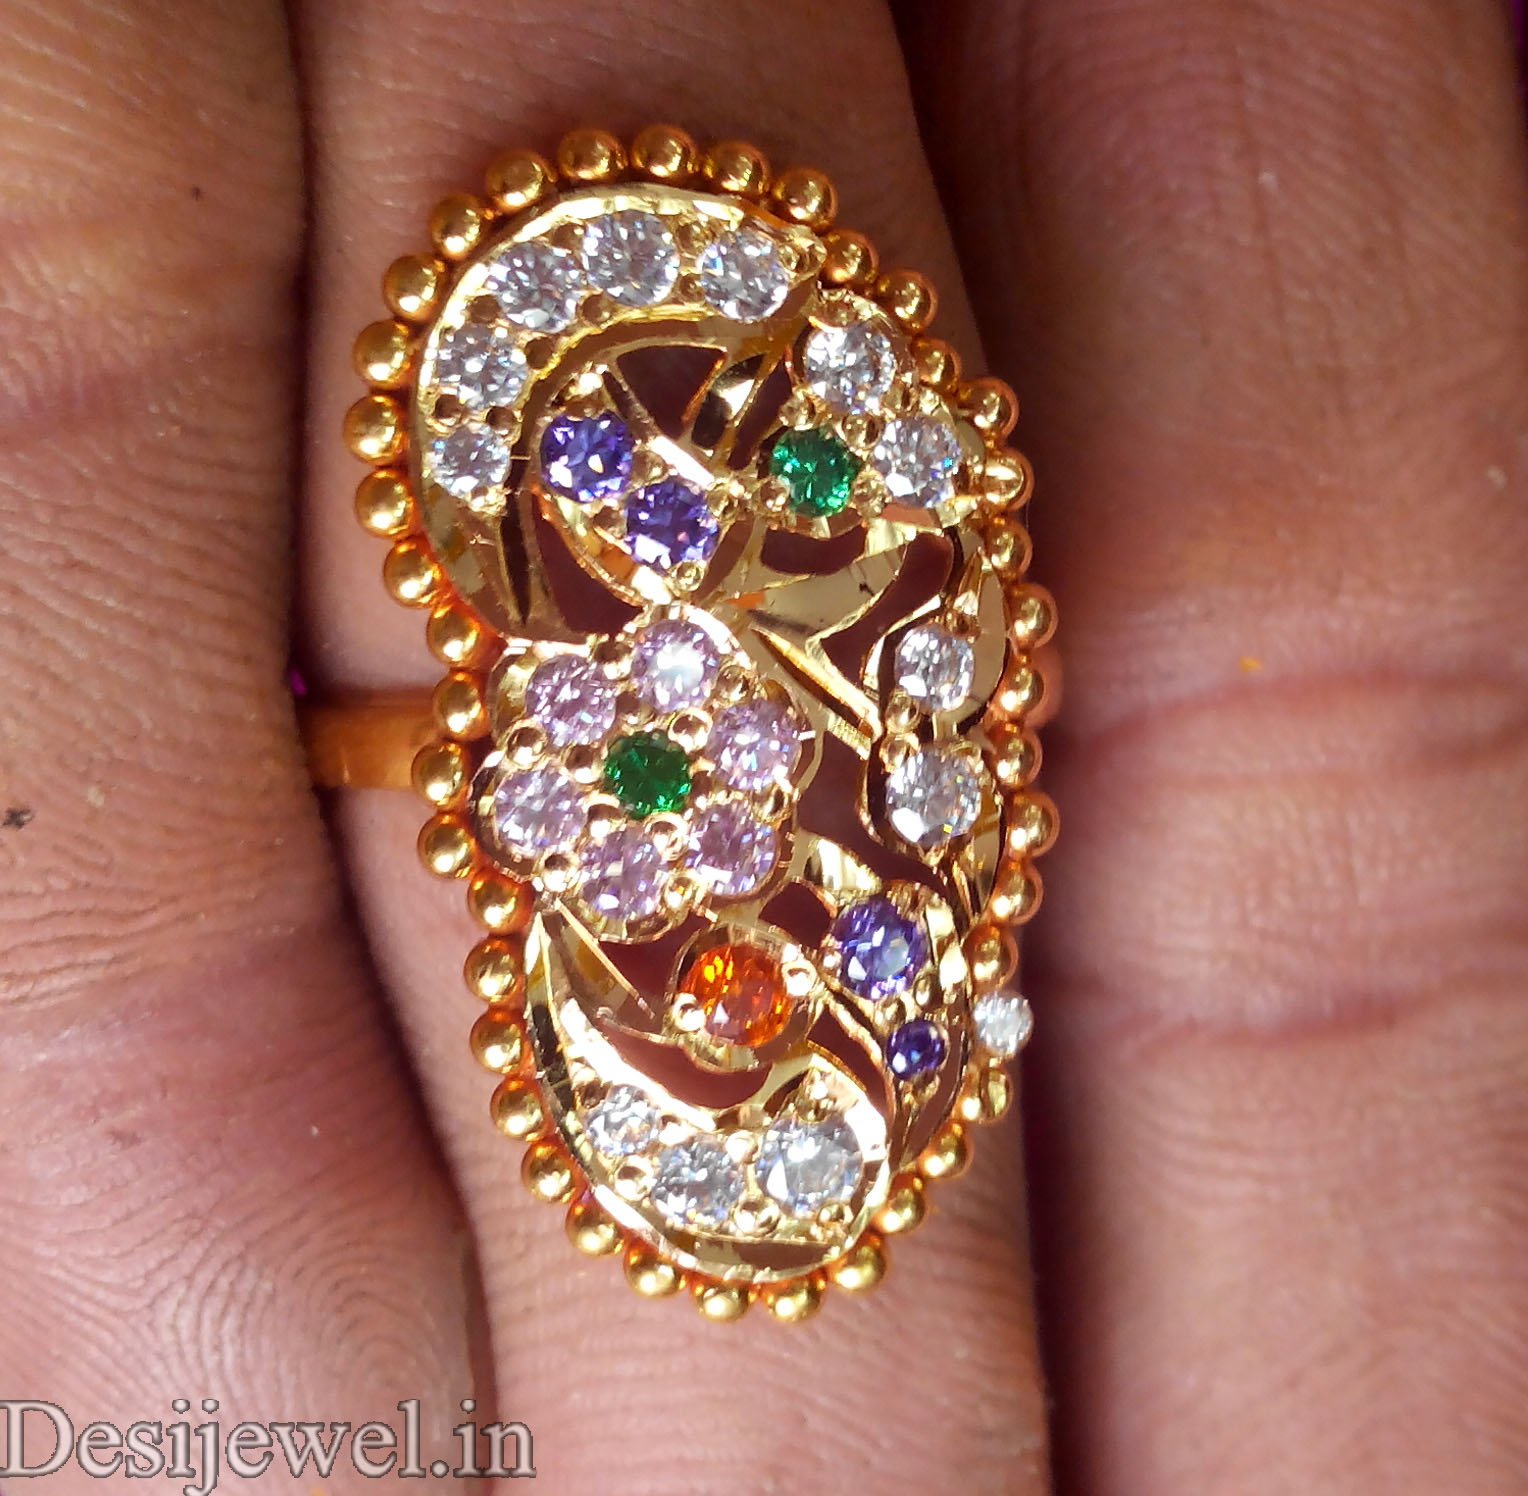 Rajasthani Gold Desi Ladies Ring Jewellery in Jodhpur with weight of 3 GM